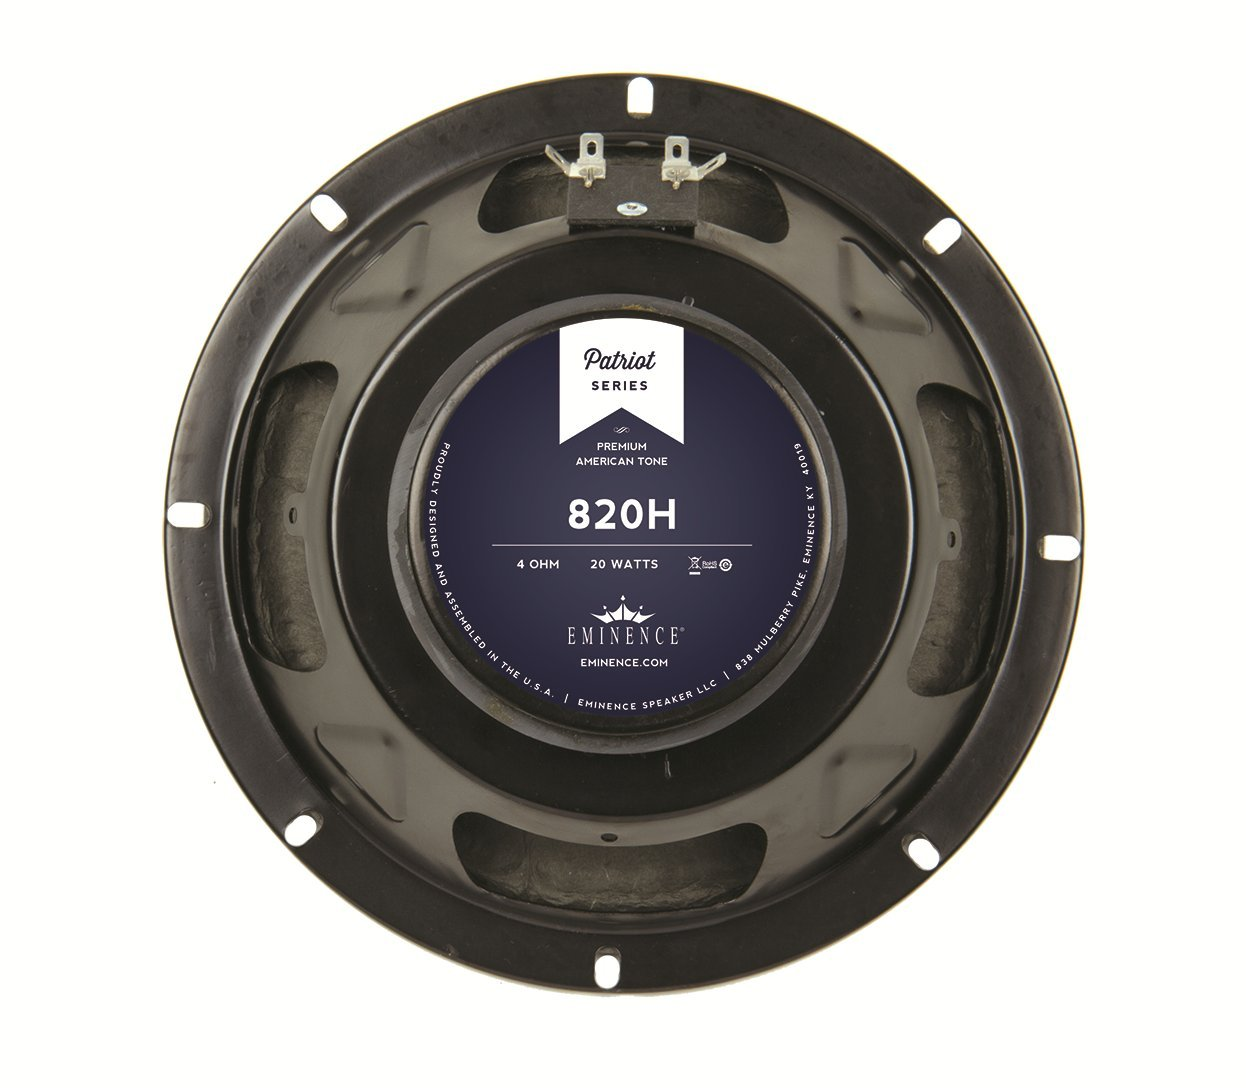 Eminence Patriot 820H 8'' Guitar Speaker with Hemp Cone, 20 Watts at 4 Ohms by Eminence